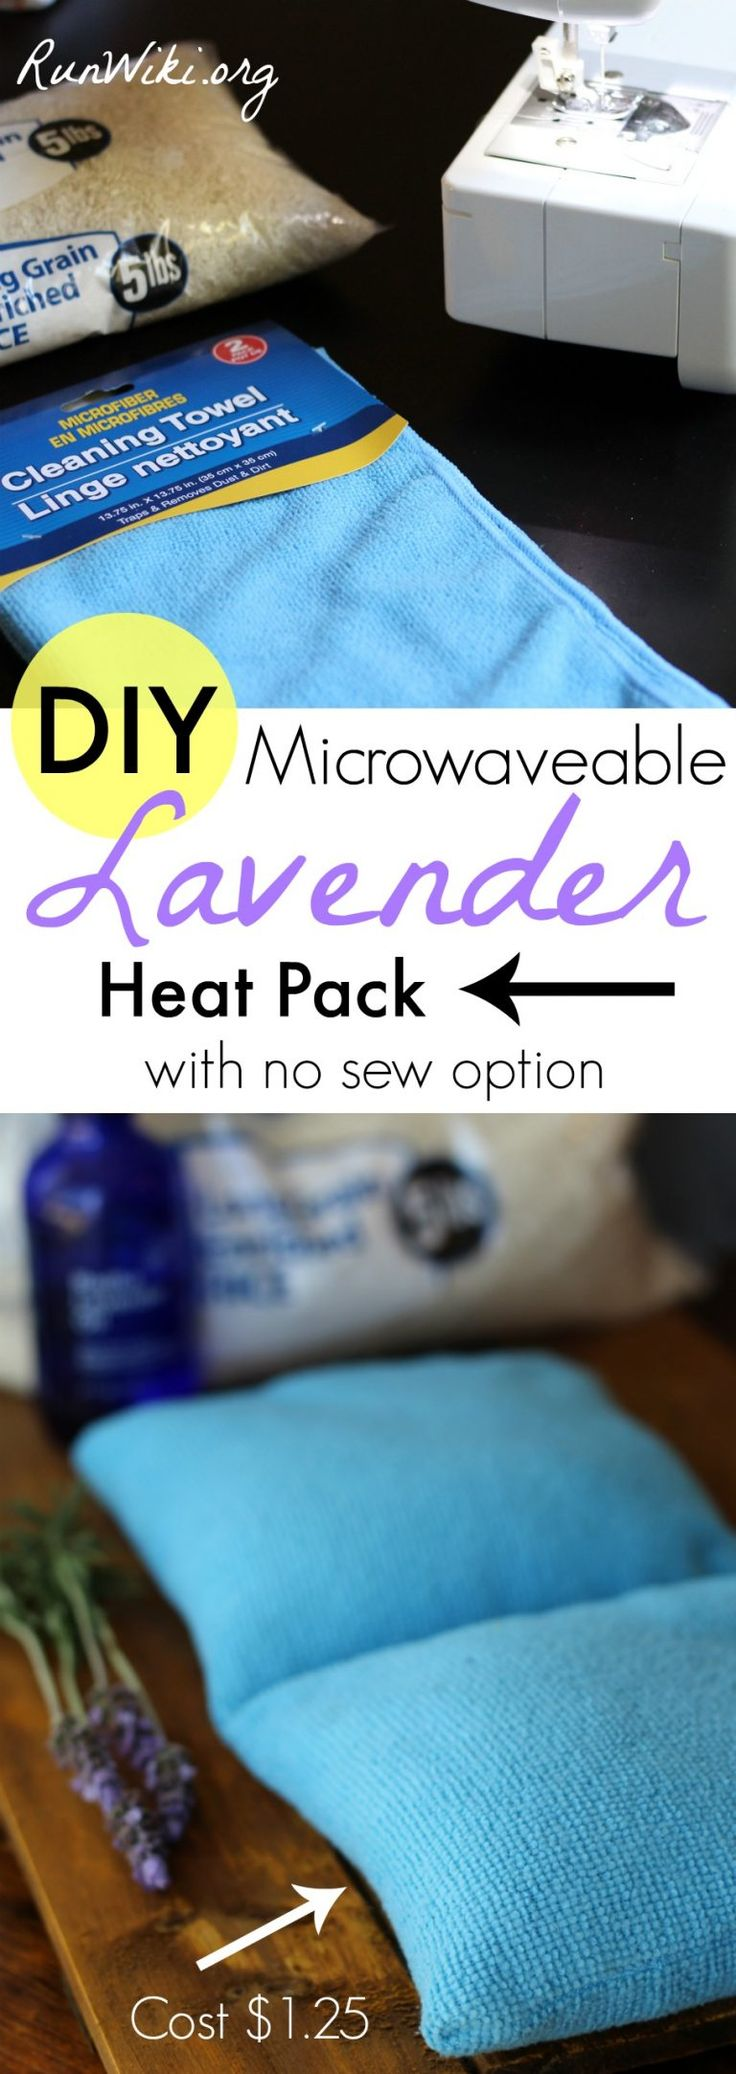 Made from Dollar Store items- rice filler and cleaning clothes these quick and easy DIY Microwaveable aromatherapy Lavender heat packs pads ease sore muscles, kids or an achy back. The best part is it only cost about 1.25 to make. Also a no-sew sock option- no pattern necessary.  Great gift for runners or fitness people. Half Marathon training | tips | crafts | running